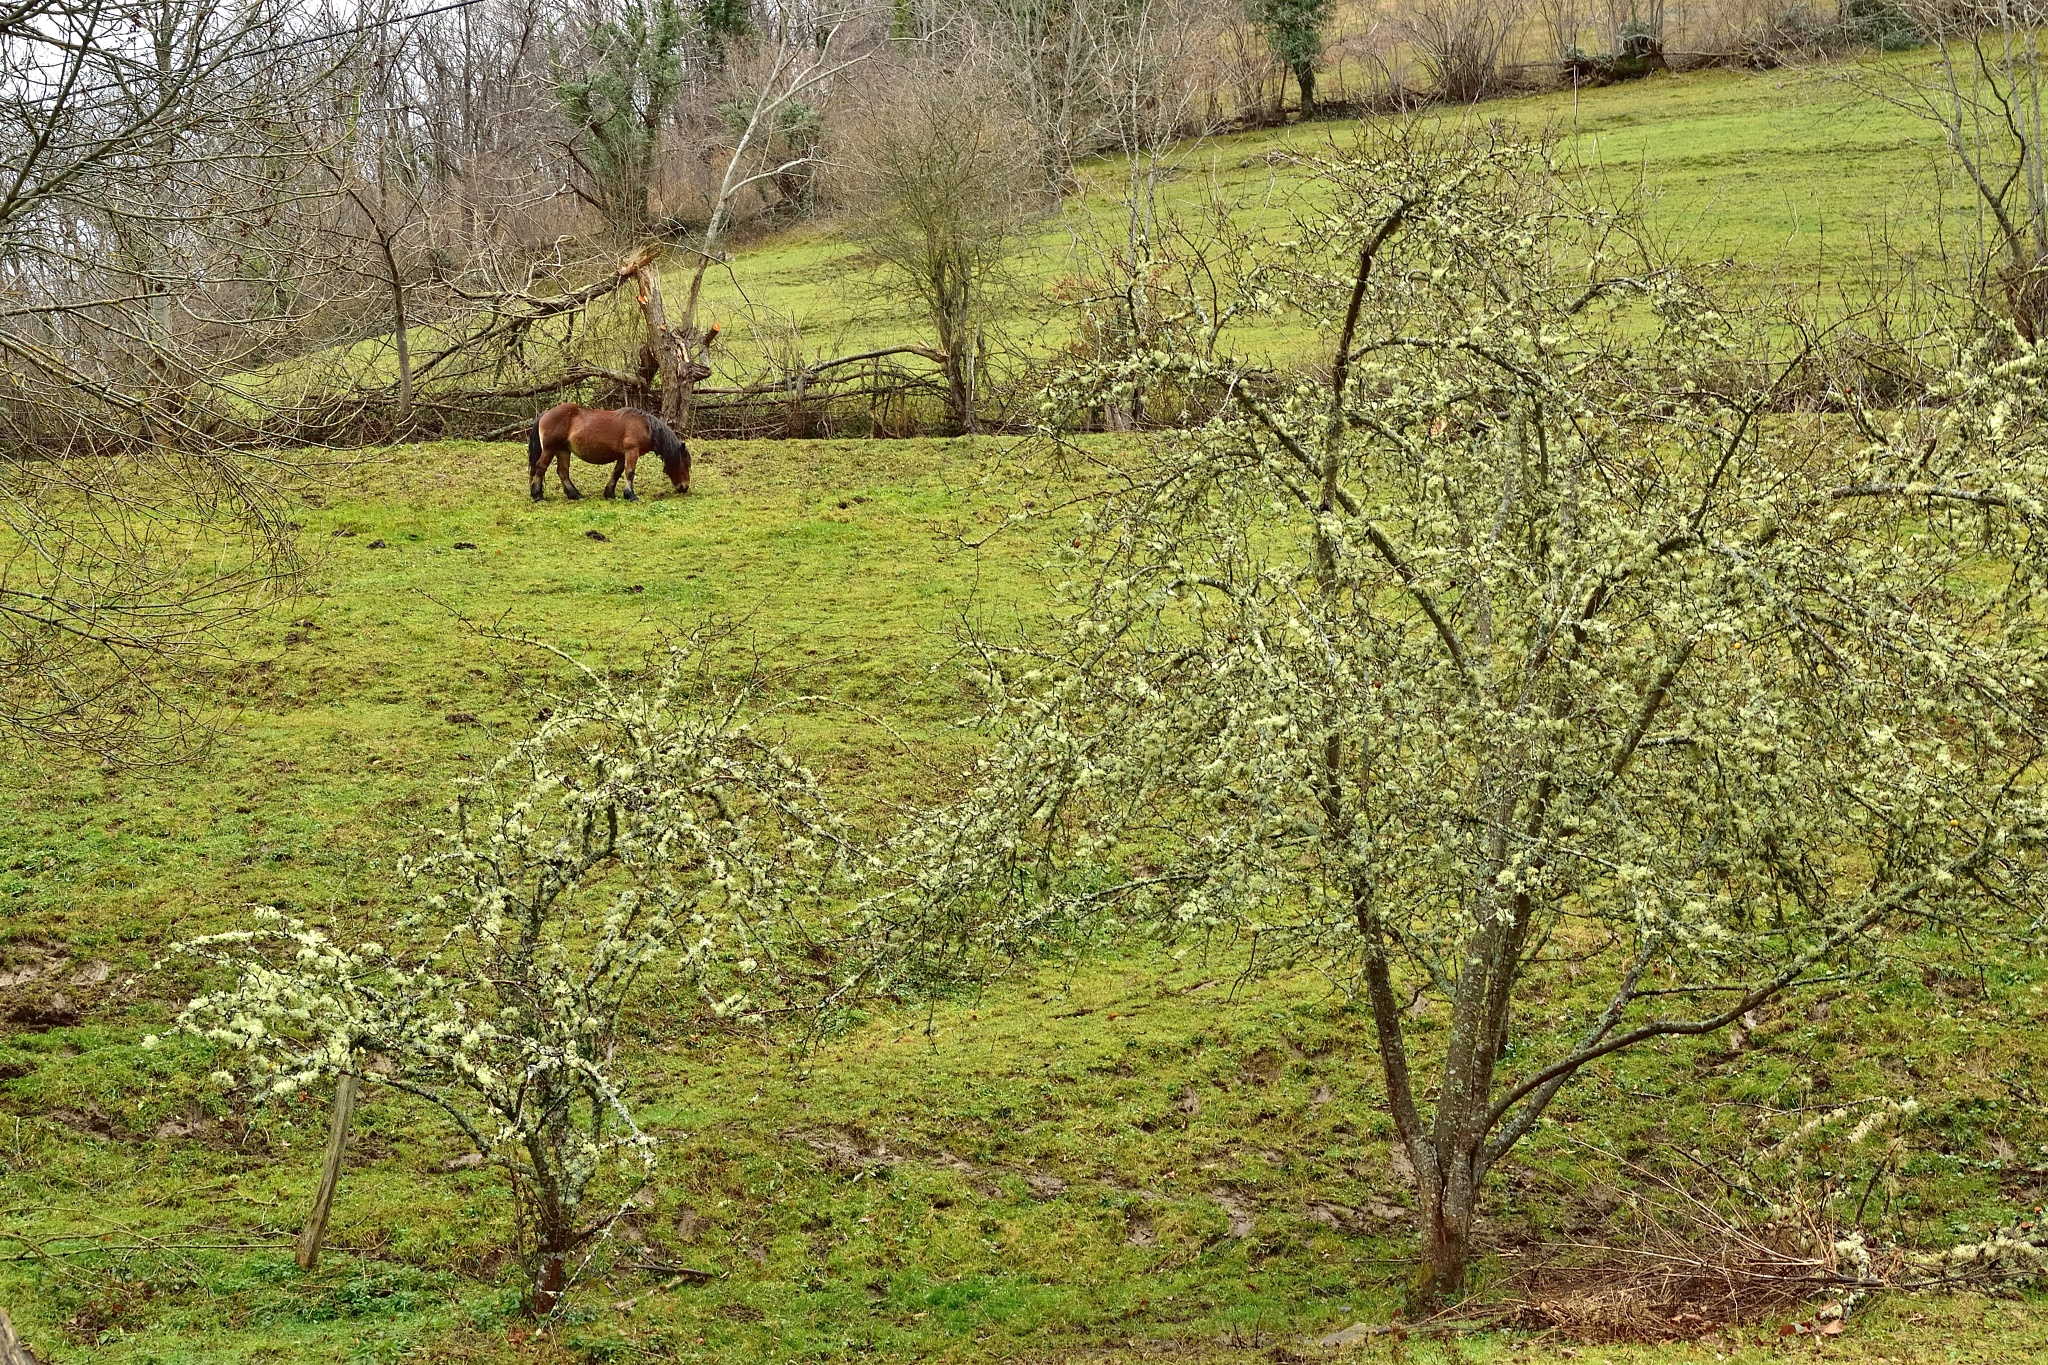 Horse and apple trees in winter by Xurde González Uría